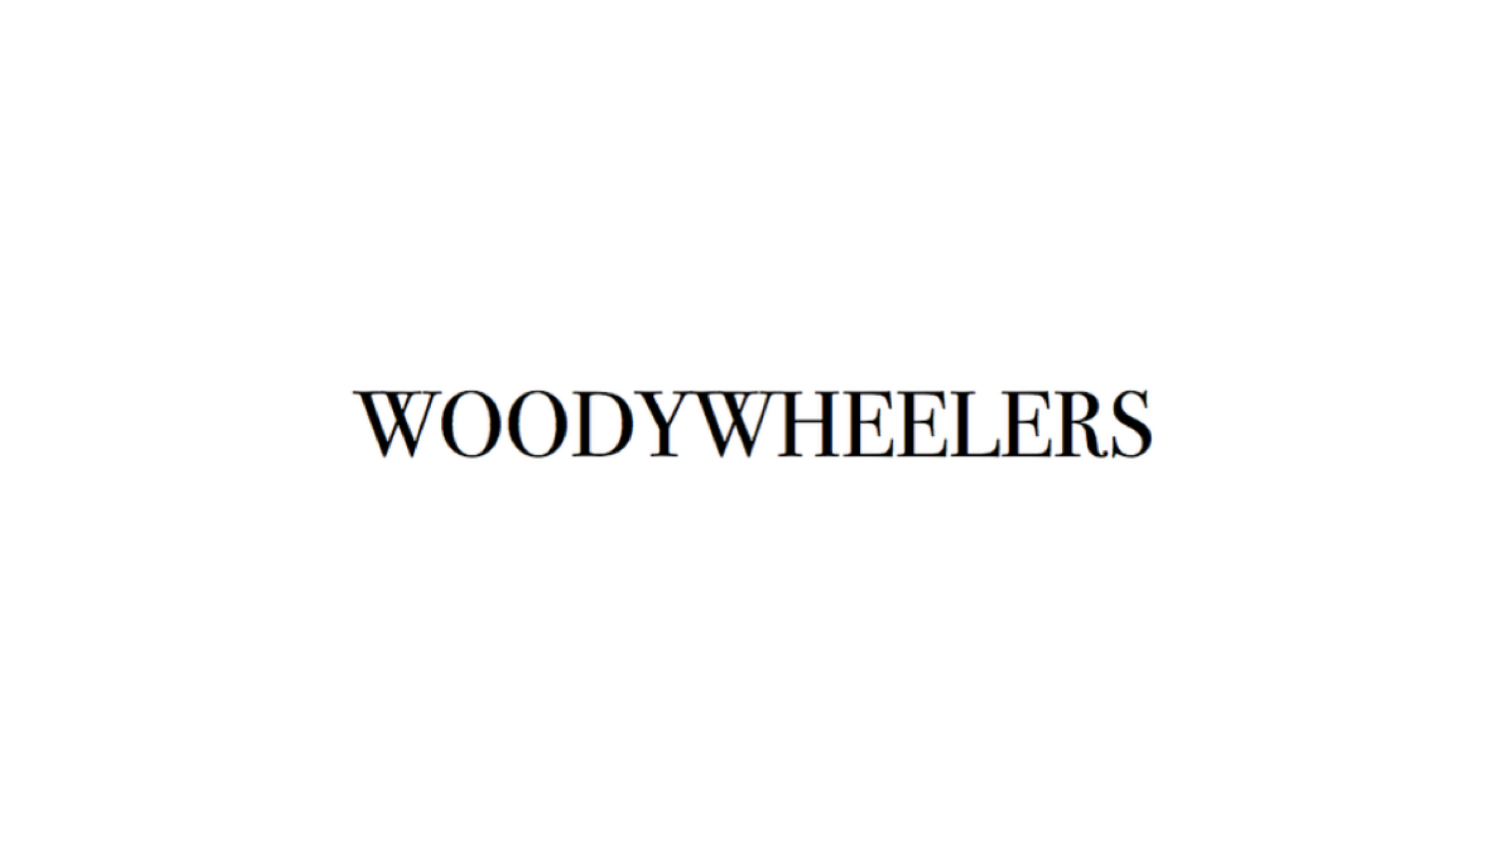 WoodyWheelers